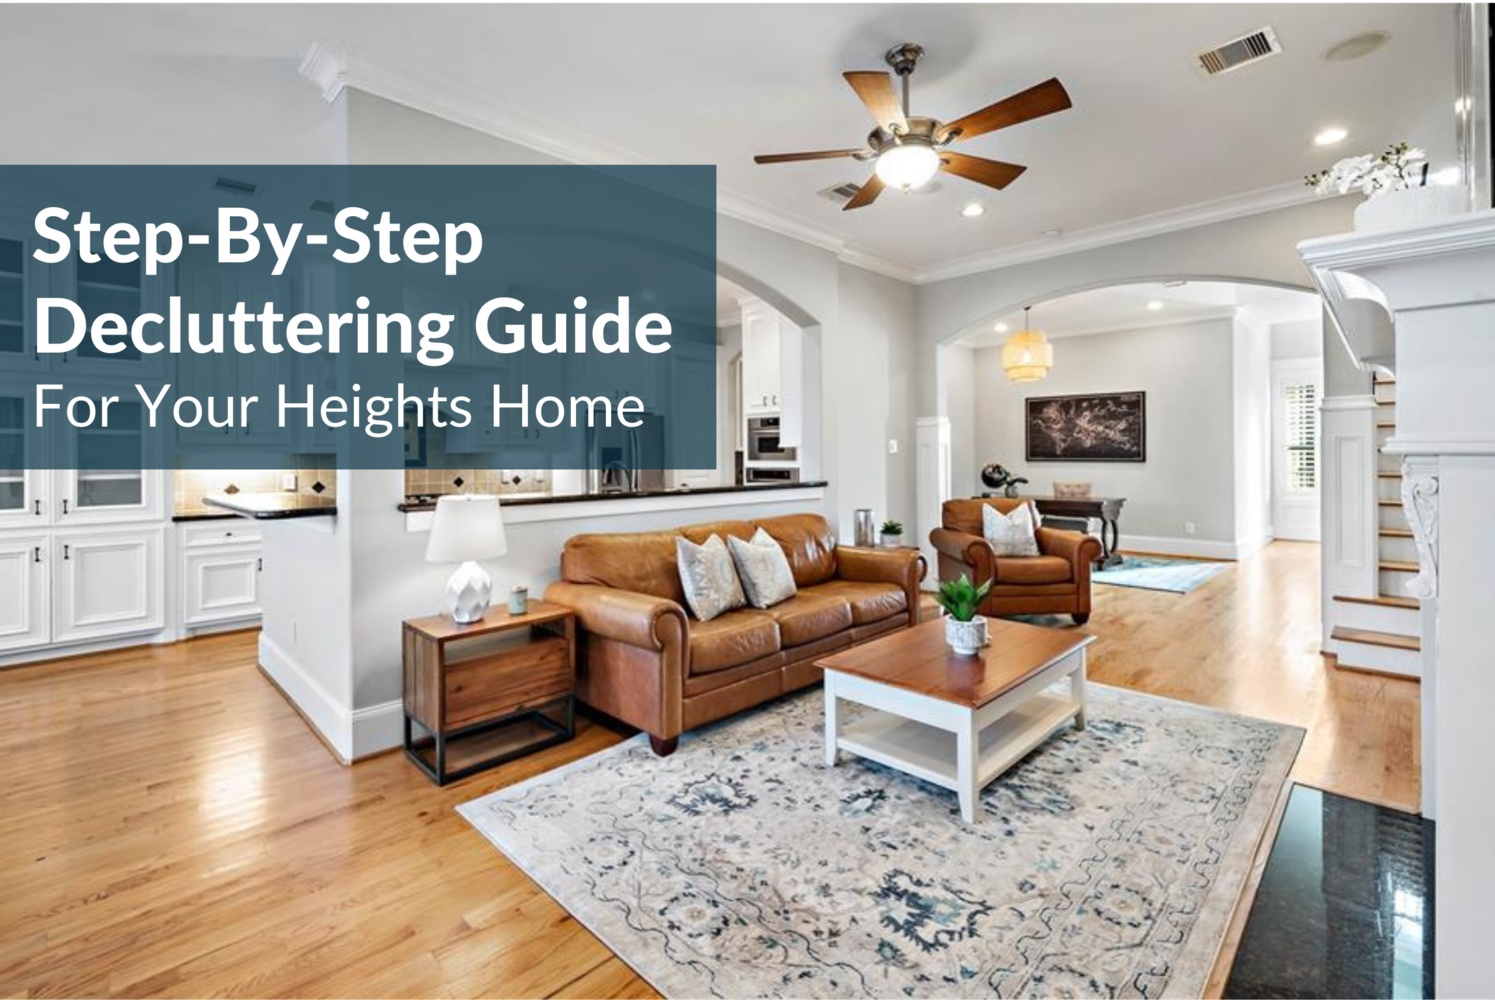 Increase Home Value: Listing Checklist For Houston Heights Sellers